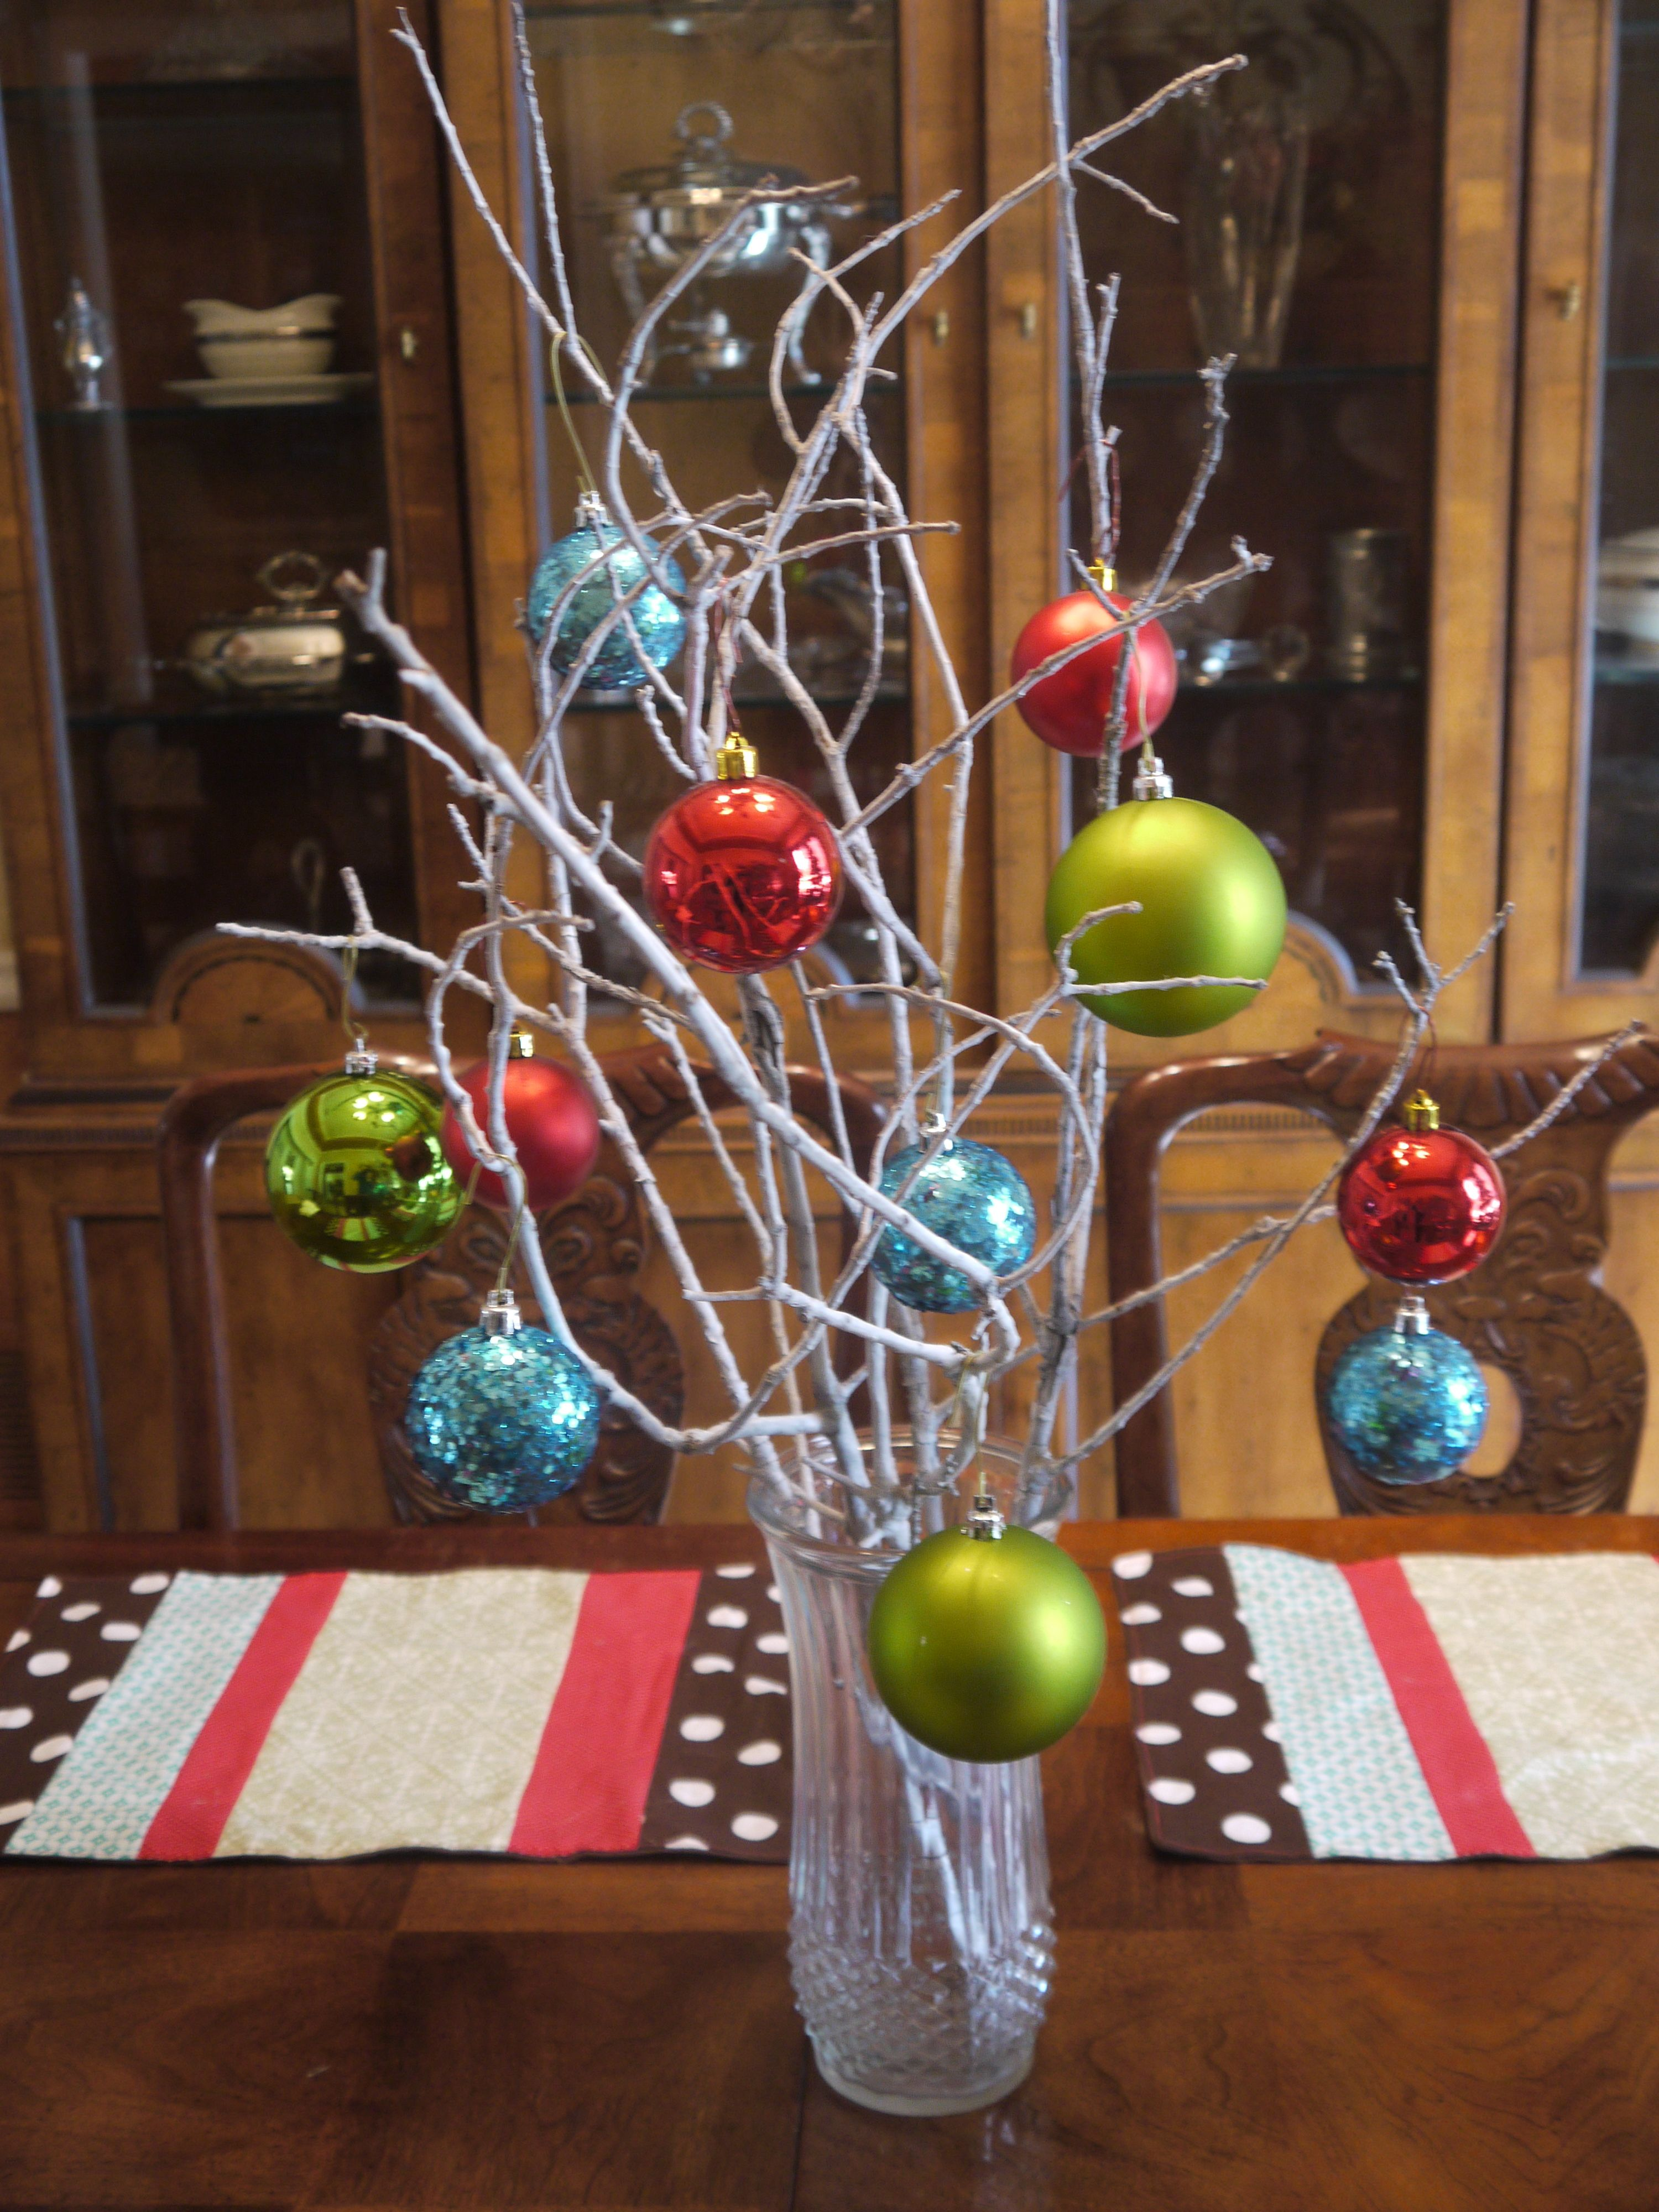 diy home decorating tree penguin a blog on cheap ornament bulb kids budget better holiday project reindeer decor easy bible light decorations christmas your